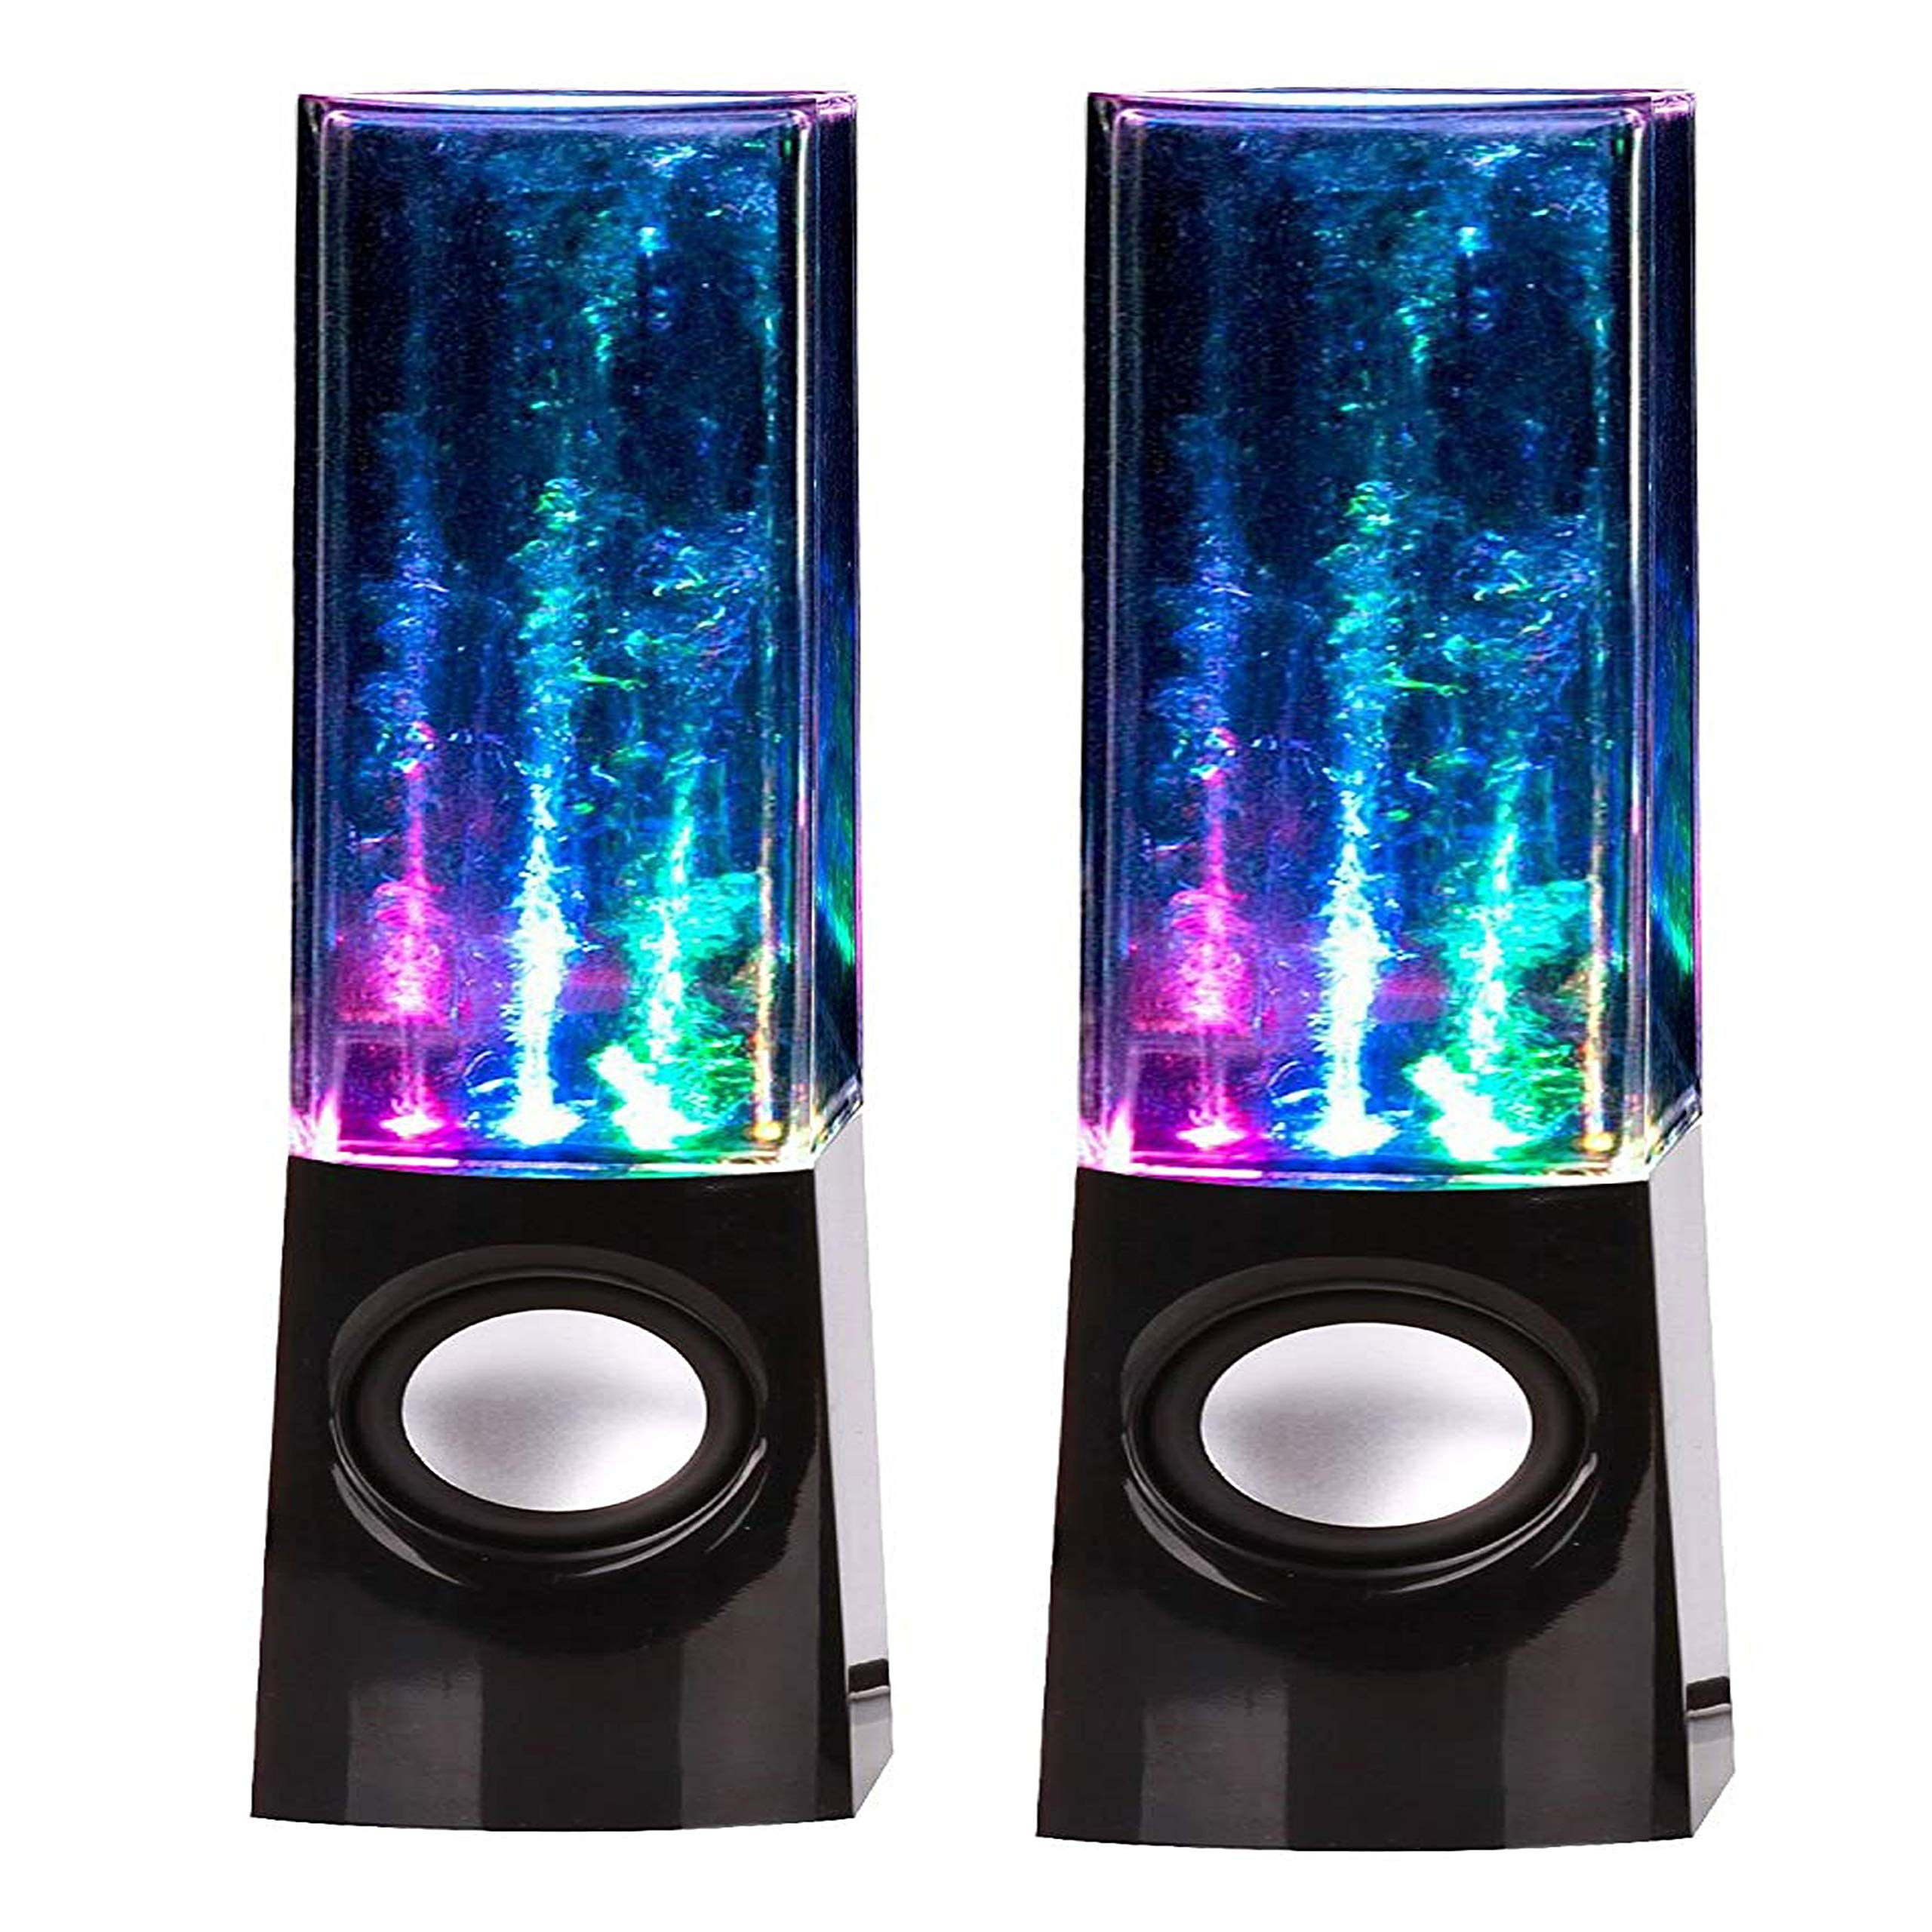 LED Multi-Color Illuminated Dancing Water Speaker for iOS and Android Smart Phone|Fountain LED Portable Built-in Amplifier, Hi-Fi Stereo Speakers